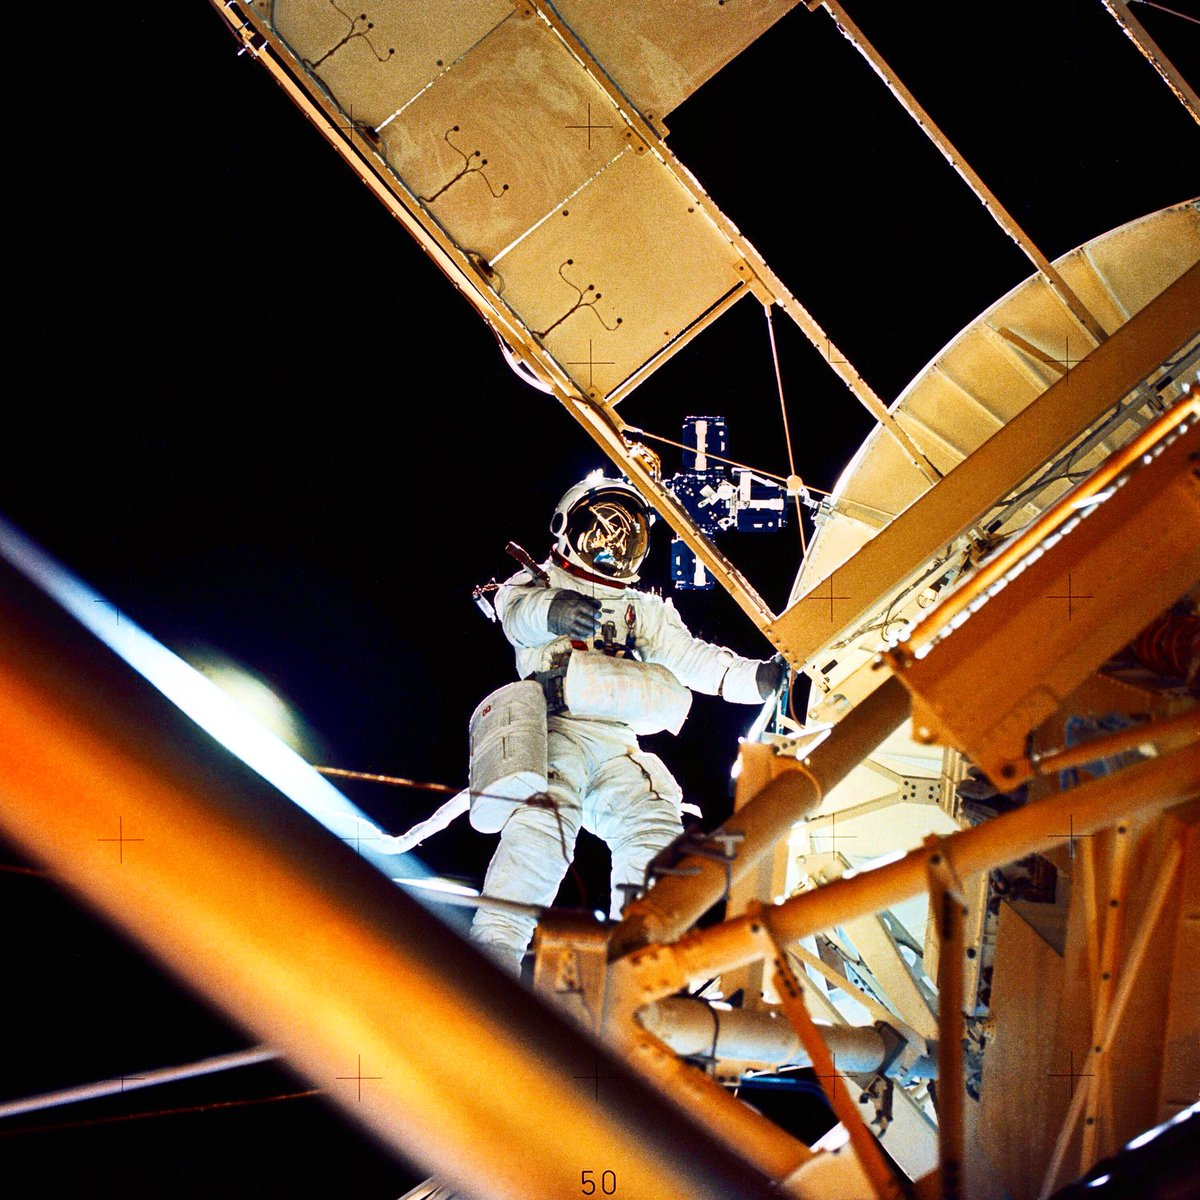 TheAstronot photo